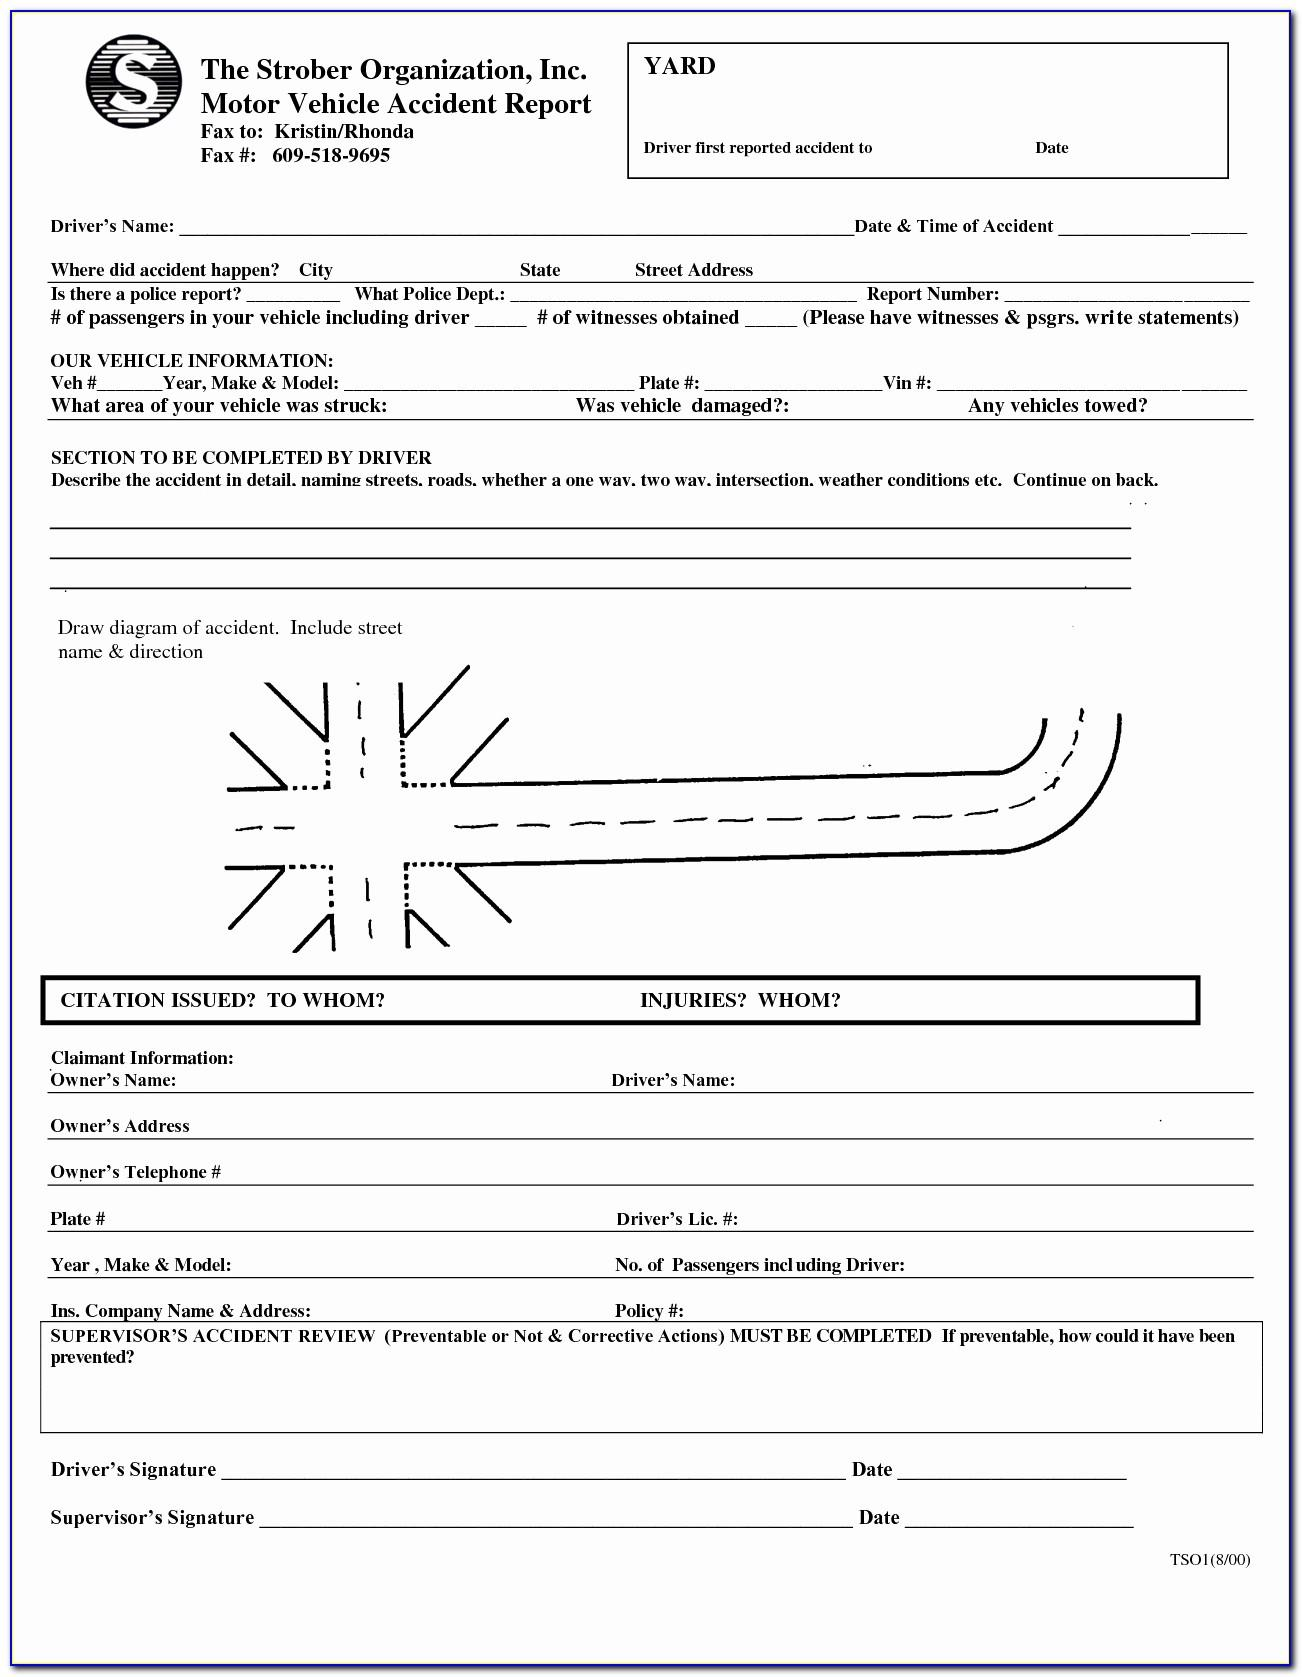 Motor Vehicle Incident Report Form